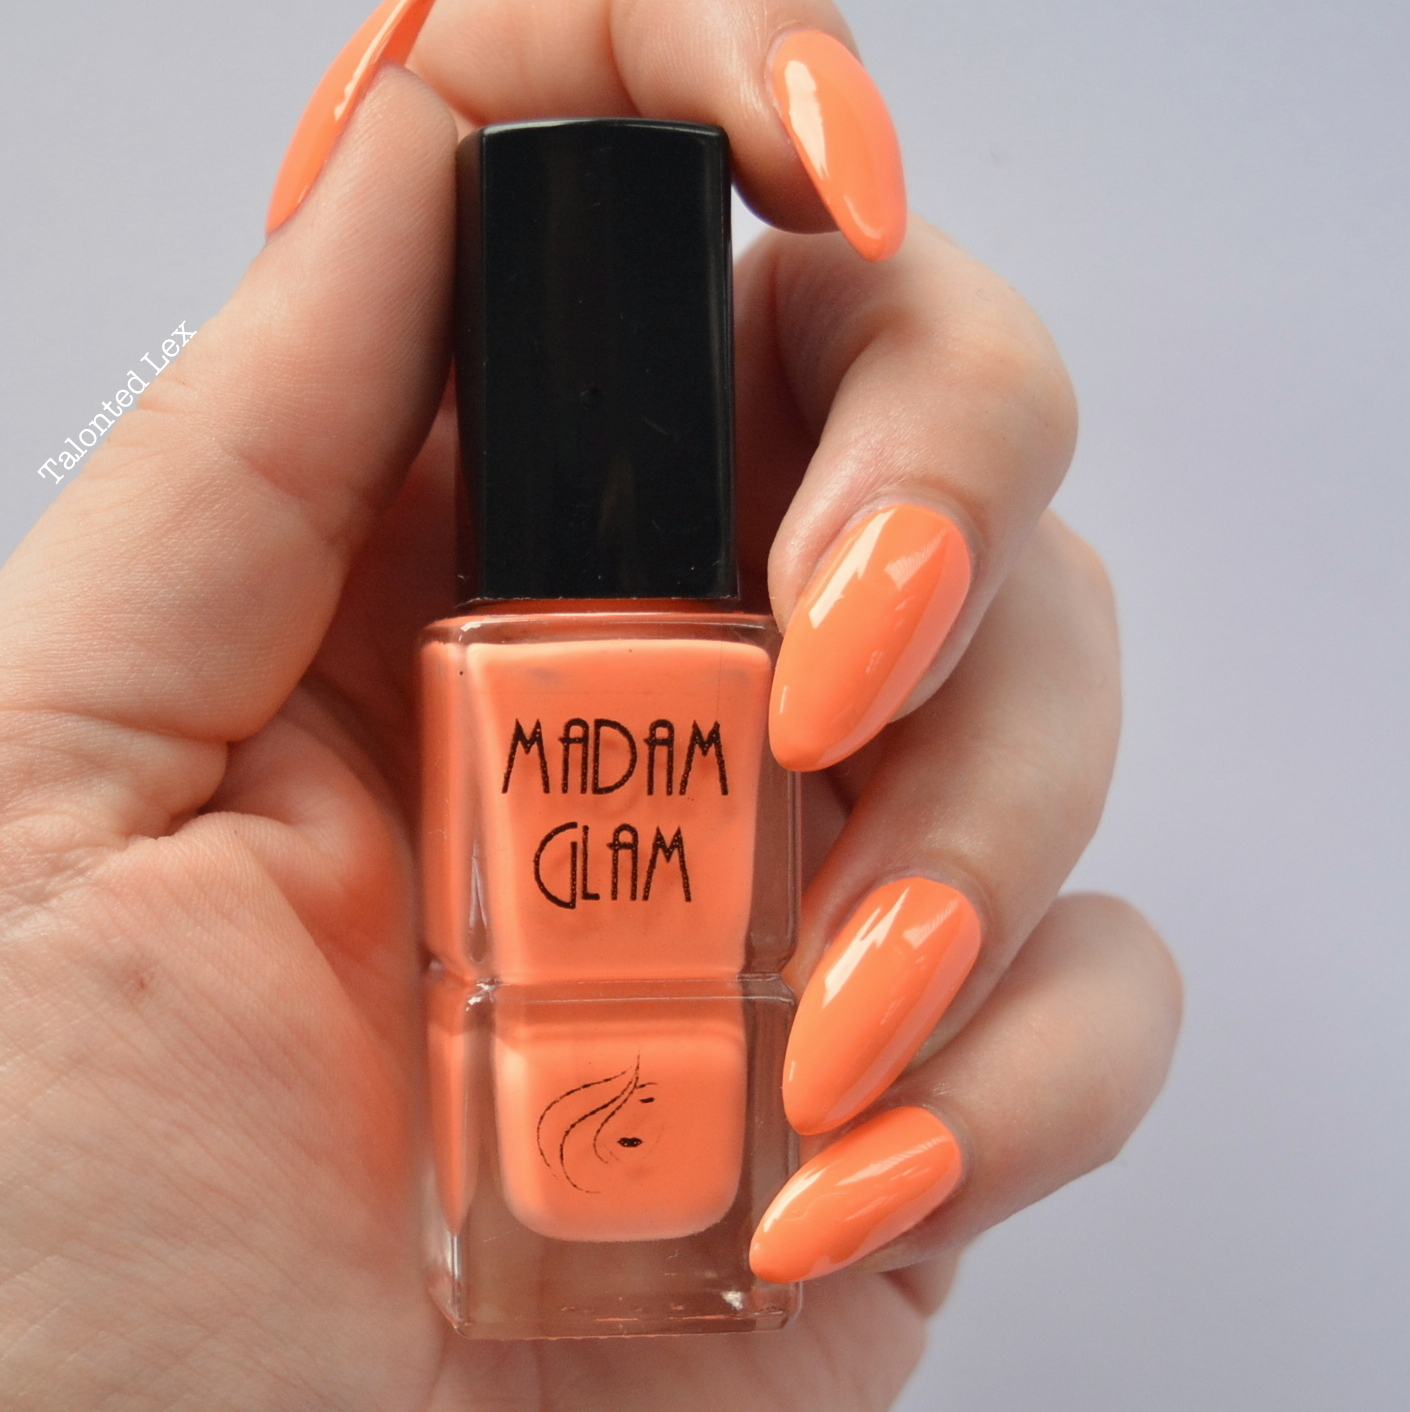 Madam-Glam-Summer-Nights-Nail-varnish-review-Talonted-Lex